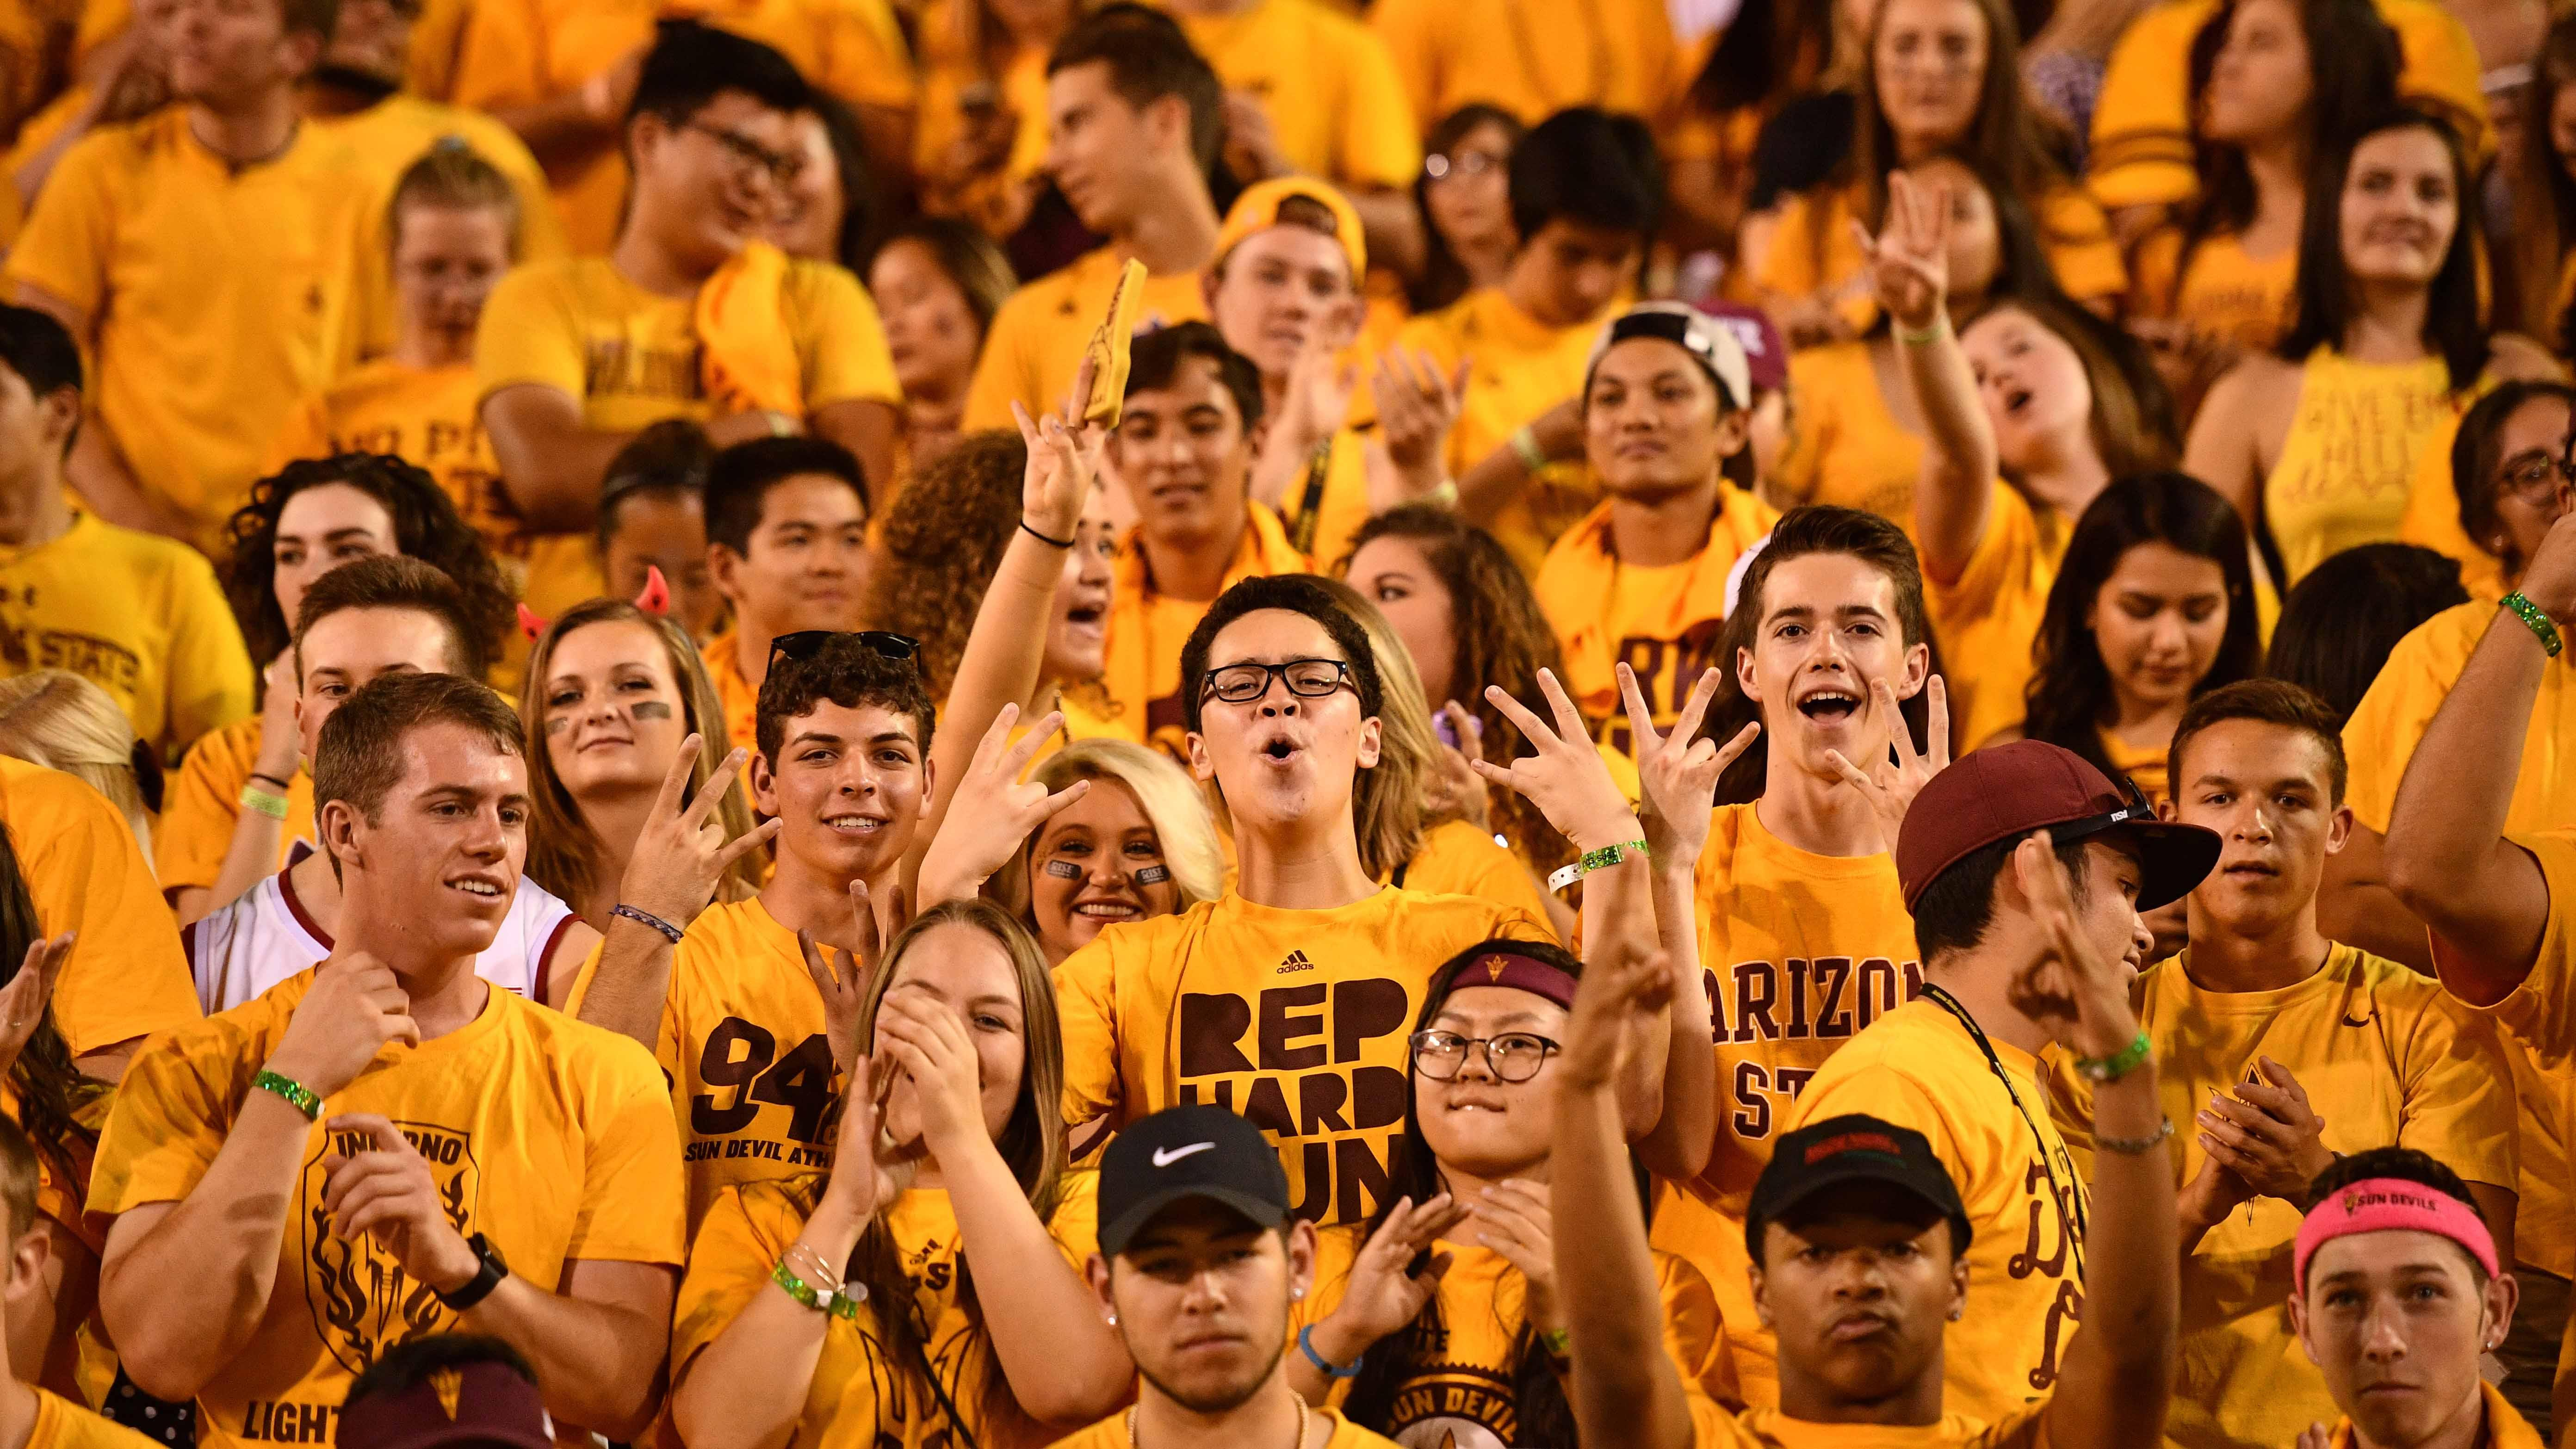 Students wear gold in the Inferno student section at Sun Devil Stadium for a football game